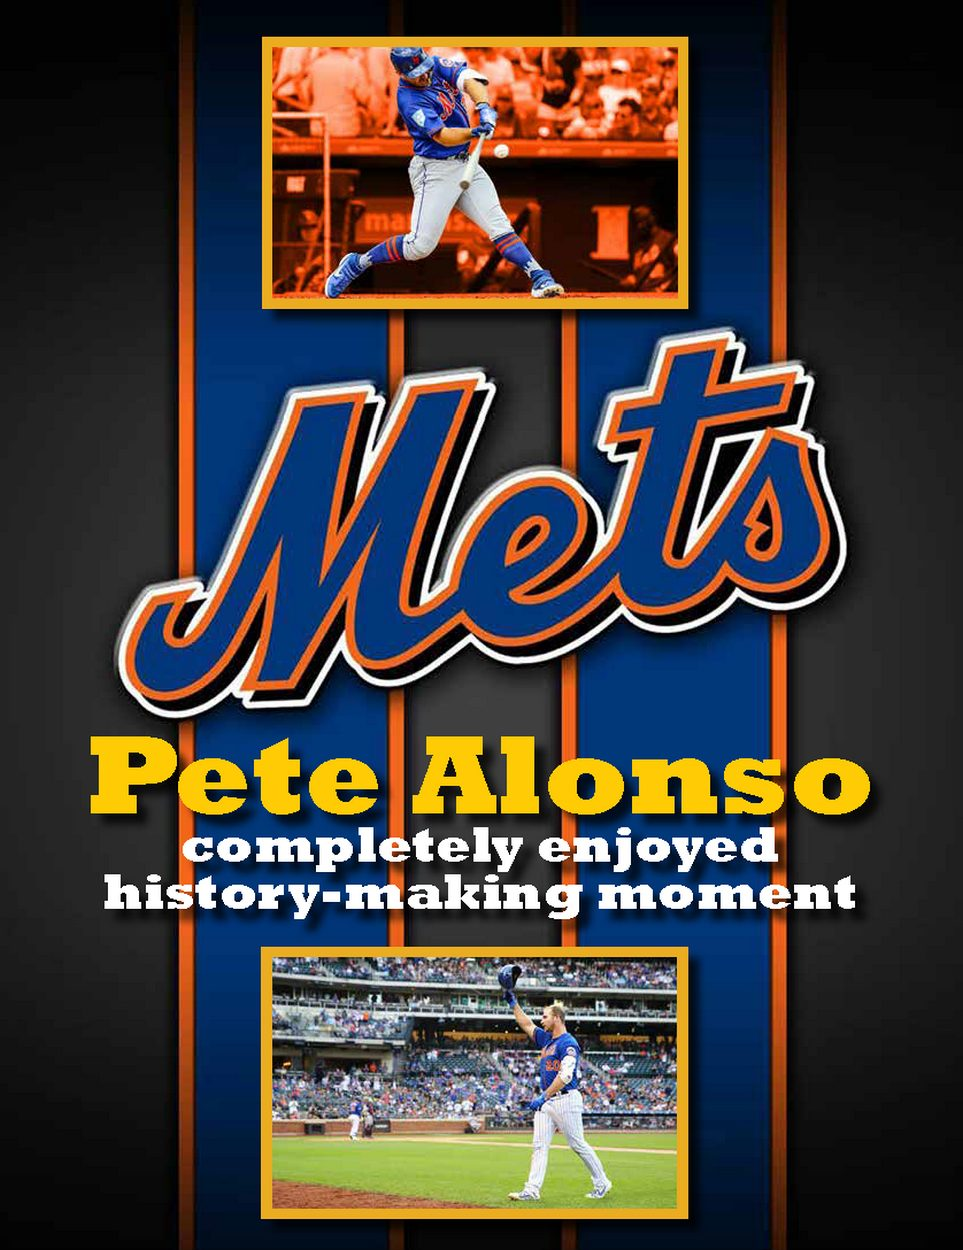 Pete Alonso completely enjoyed history-making moment